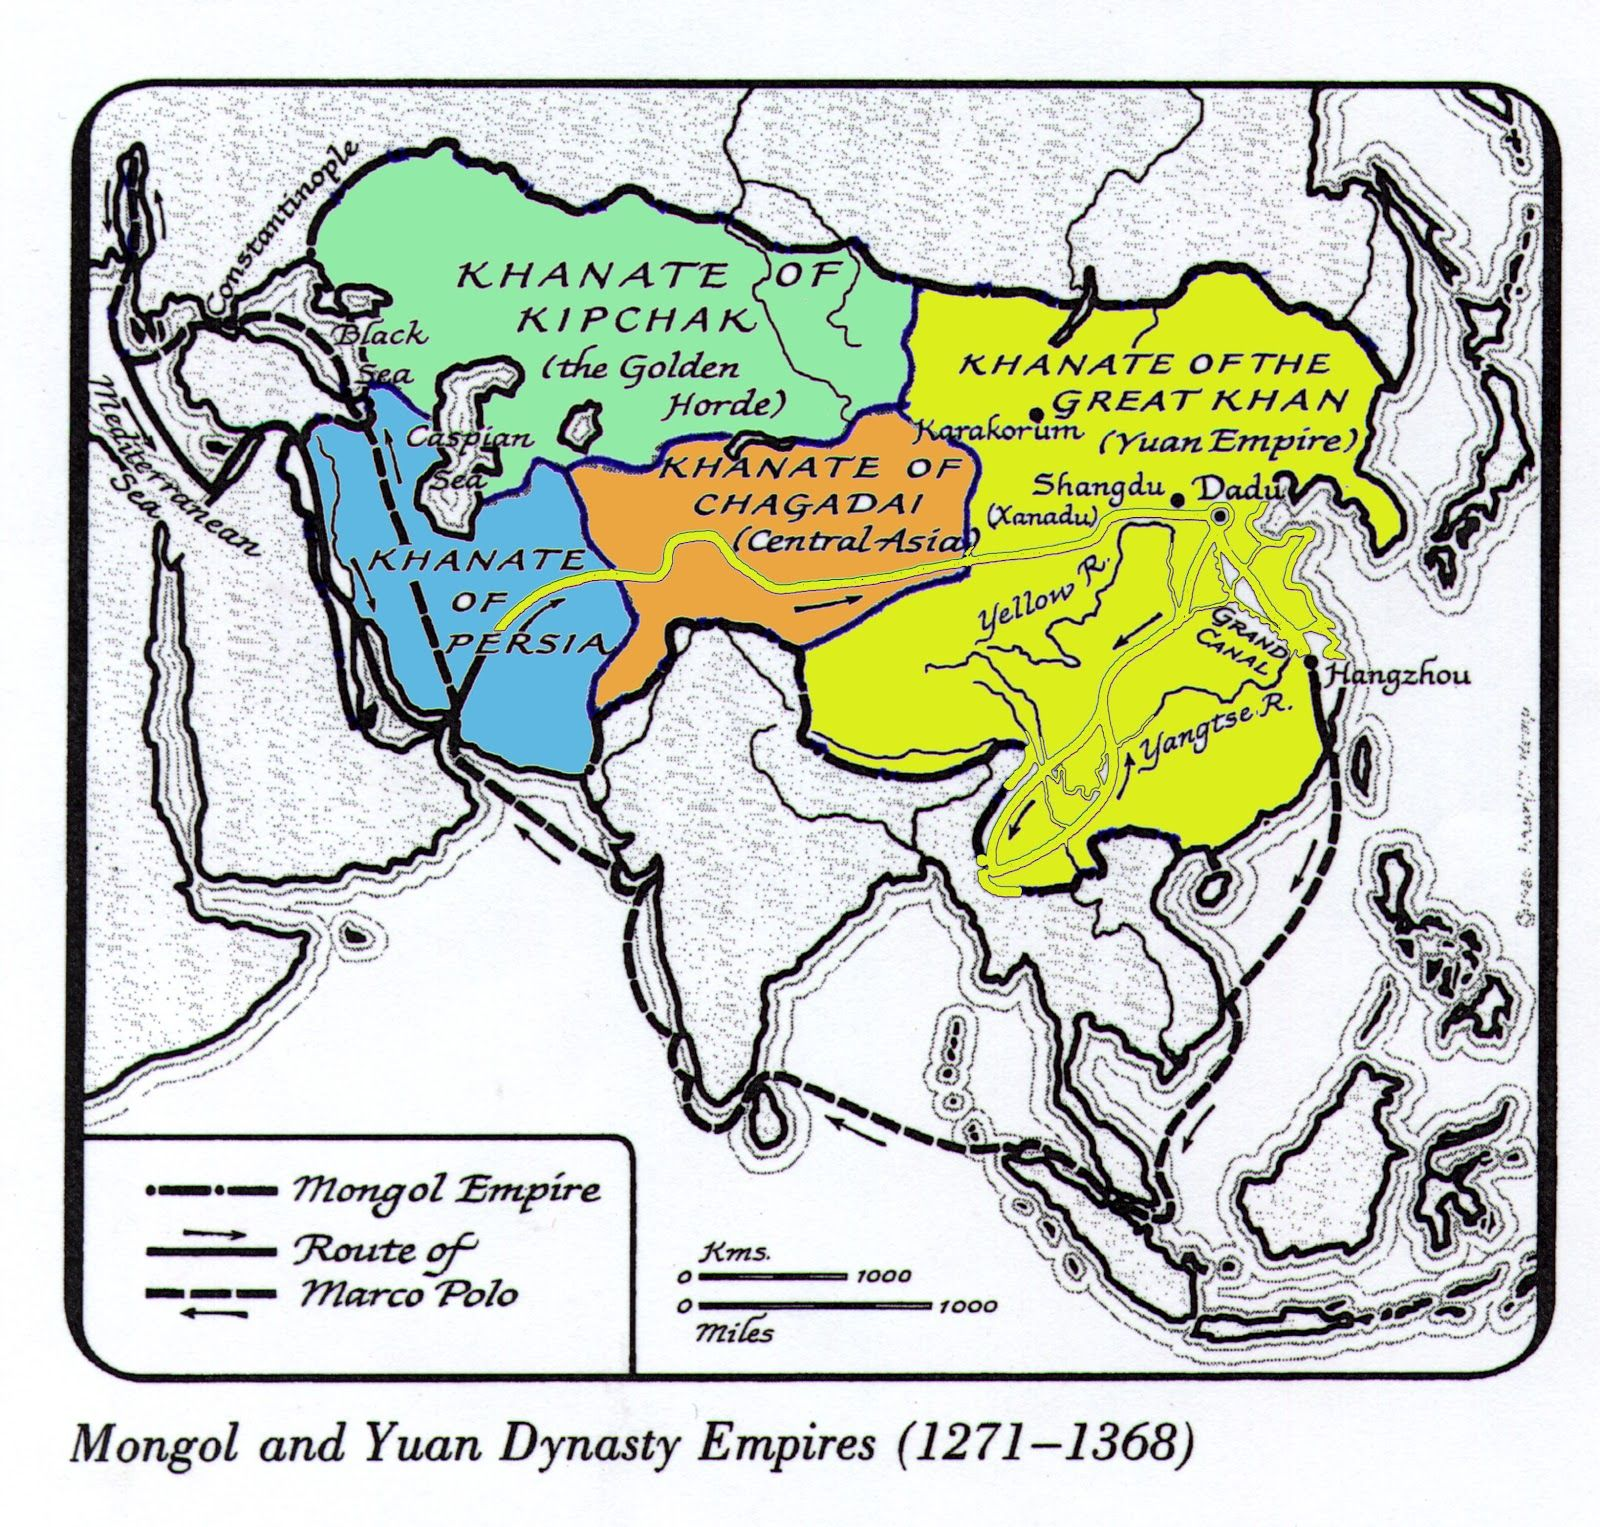 Mongol and Yuan Dynasty Empires. Mystery of History Volume 2, Lesson on khanbalik map, world map, chagatai khanate map, shangdu map, khitan map, william of rubruck map, cambaluc on map, xanadu map, burkhan khaldun map, changan on map, mongols map, ilkhanate of persia map, ibn battuta map, grand canal in asia map, ancient south east asia dynasty map, yinxu map, sarai map, zhoukoudian map, xianyang map, the safavid dynasty on map,